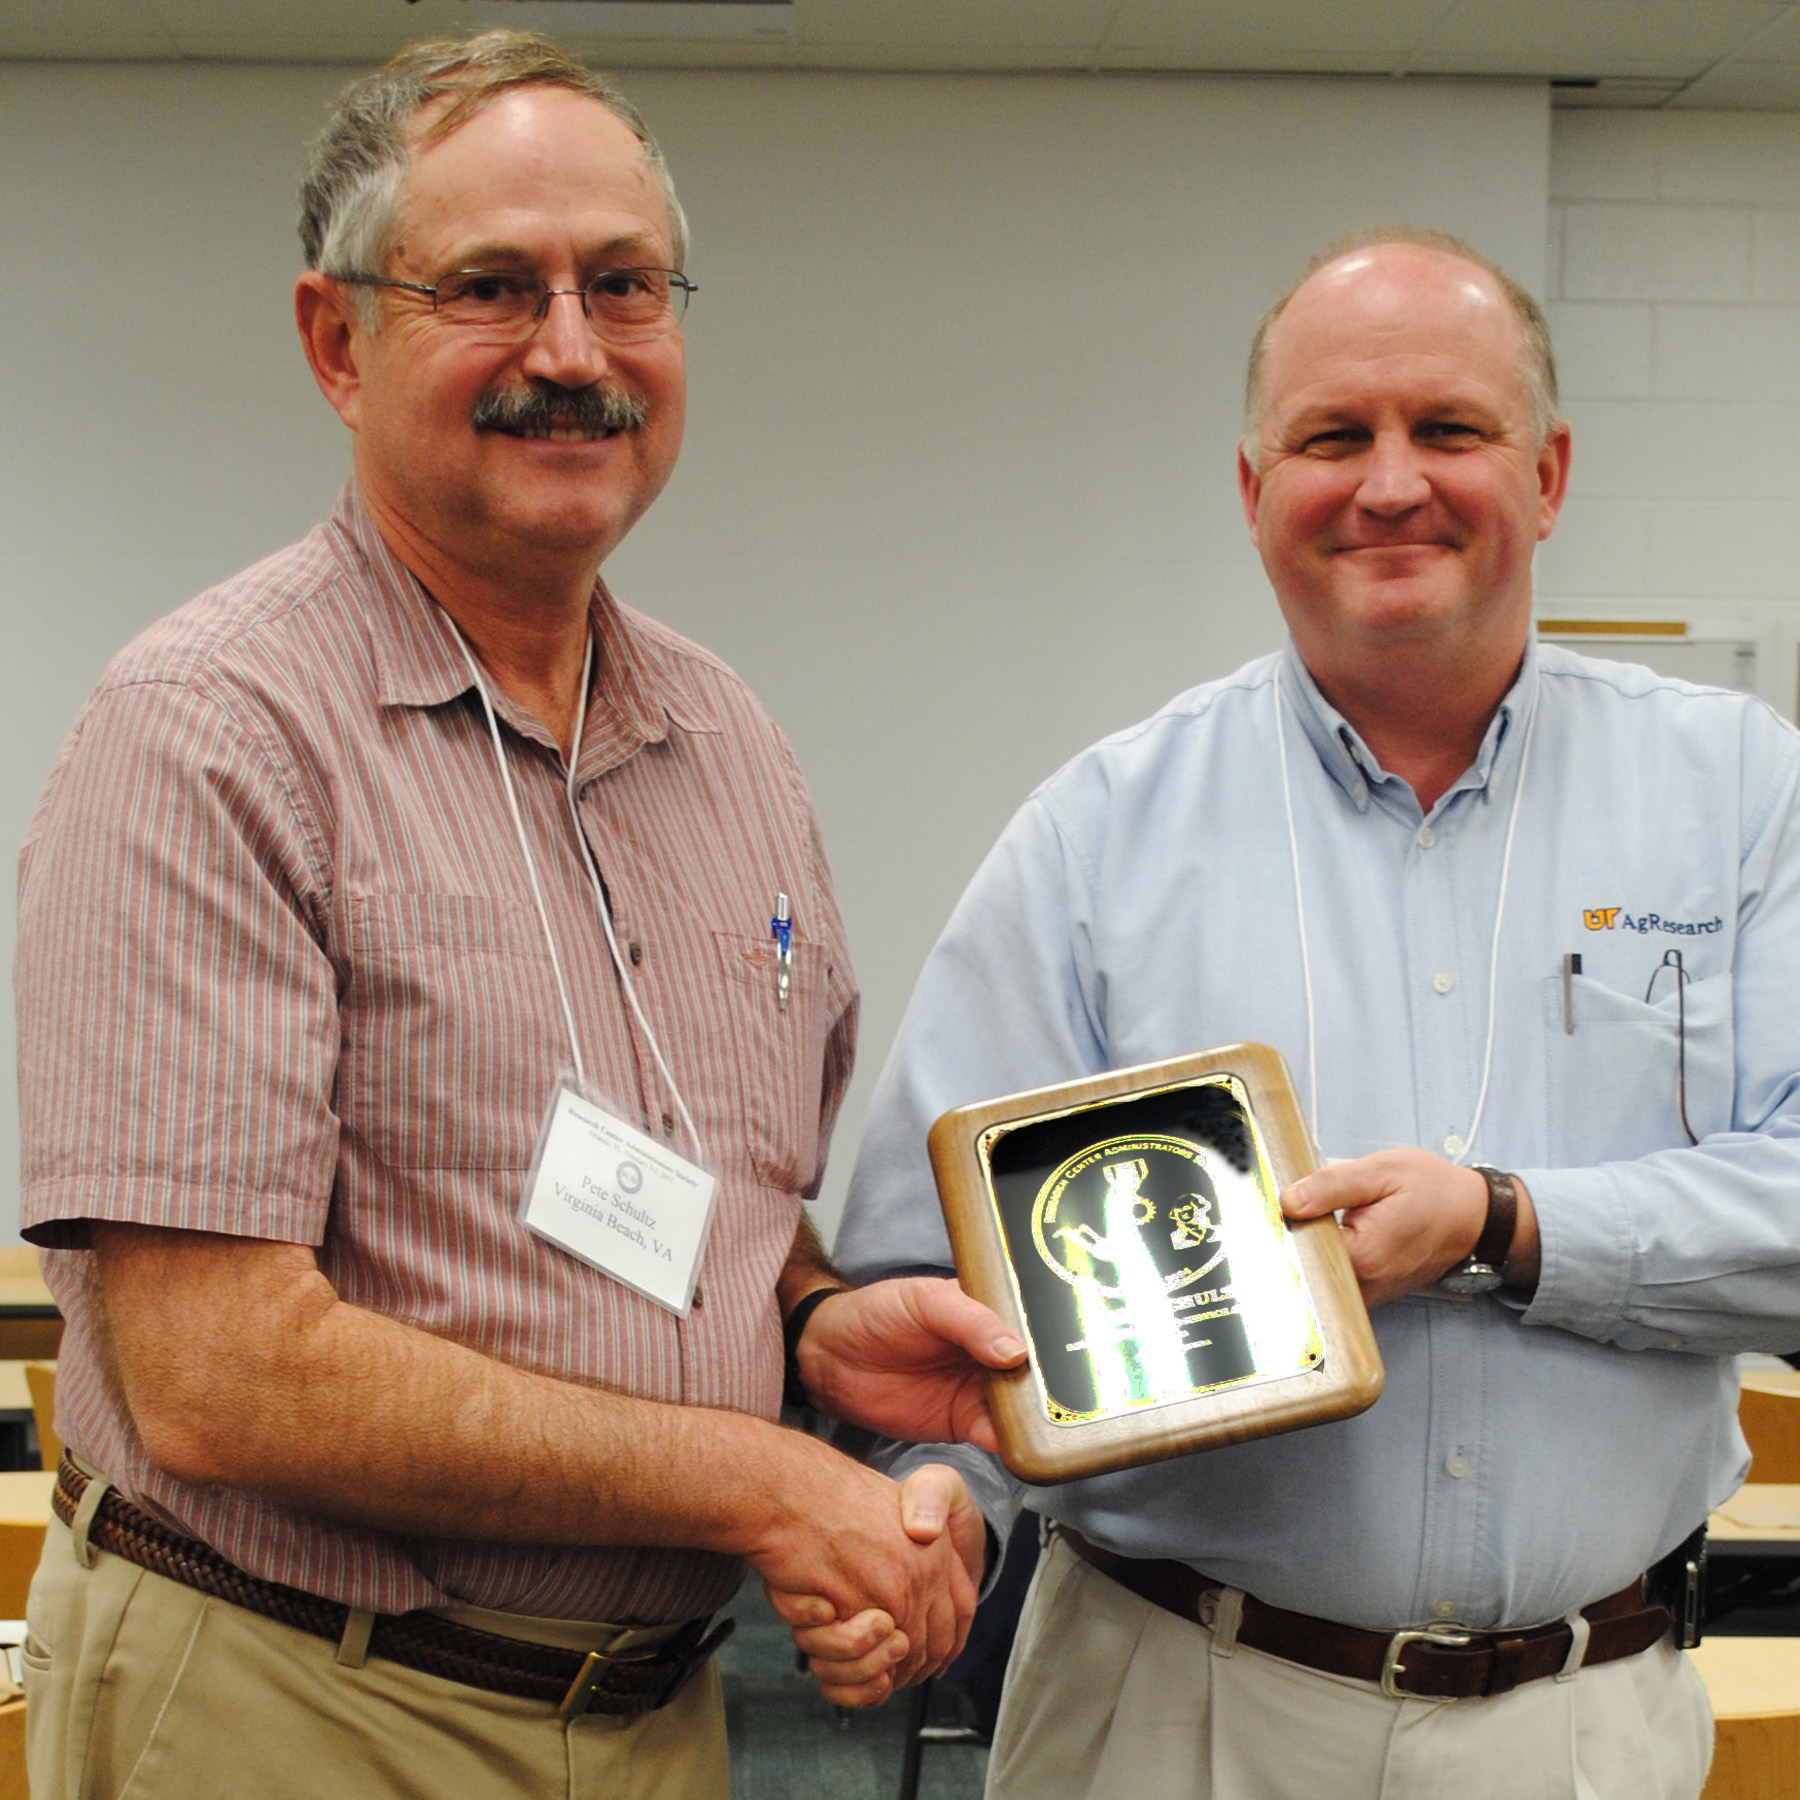 Walt Hitch presents Peter Schultz with the Distinguished Service Award from the Research Center Administrators Society of the United States.